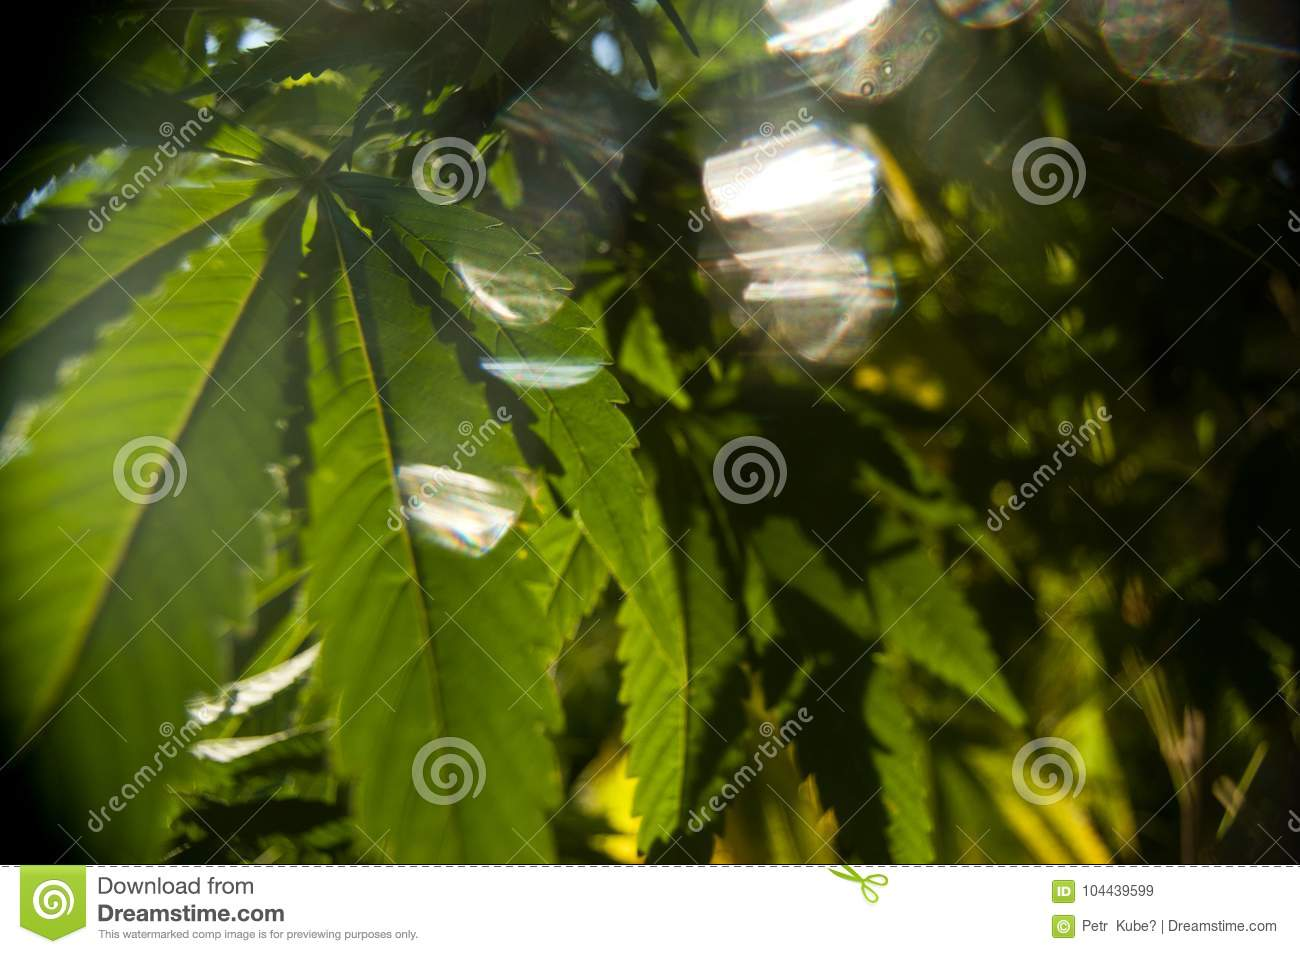 As folhas da marijuana brilham no brilho eterno do sol